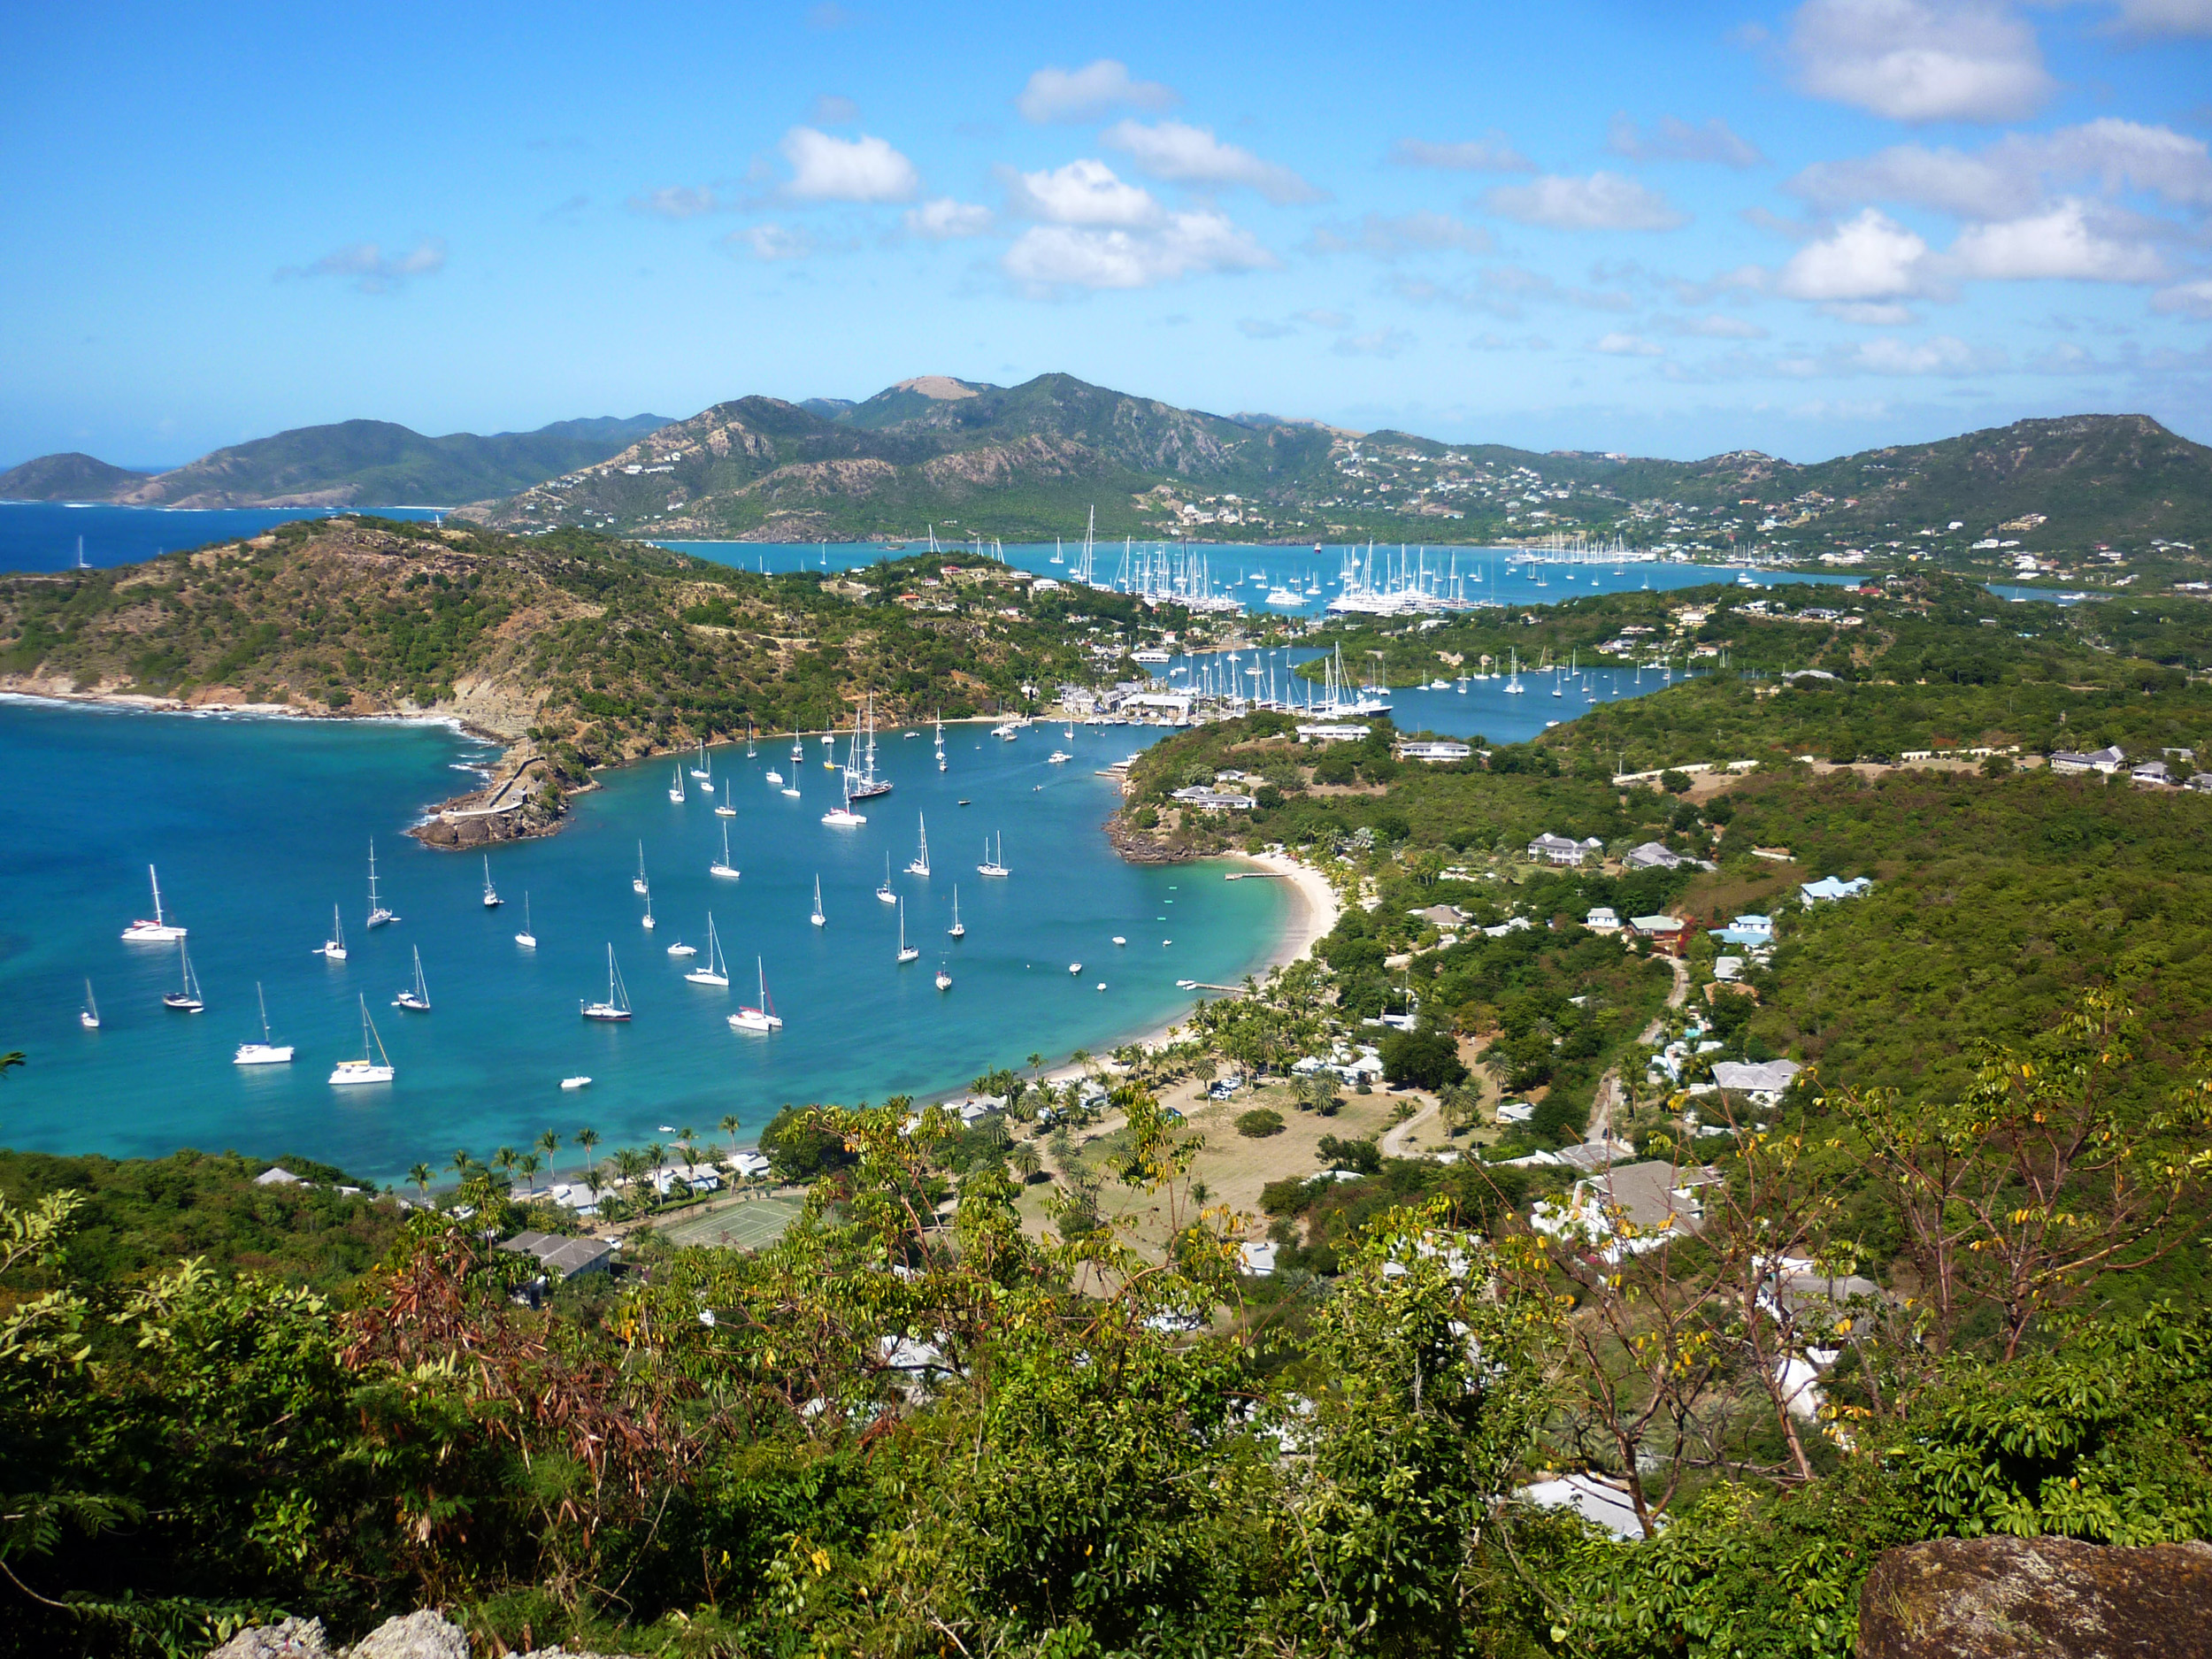 panoramic view of antigua taking in nelsons dockyard, english harbour and surrounding bays from shirley heights